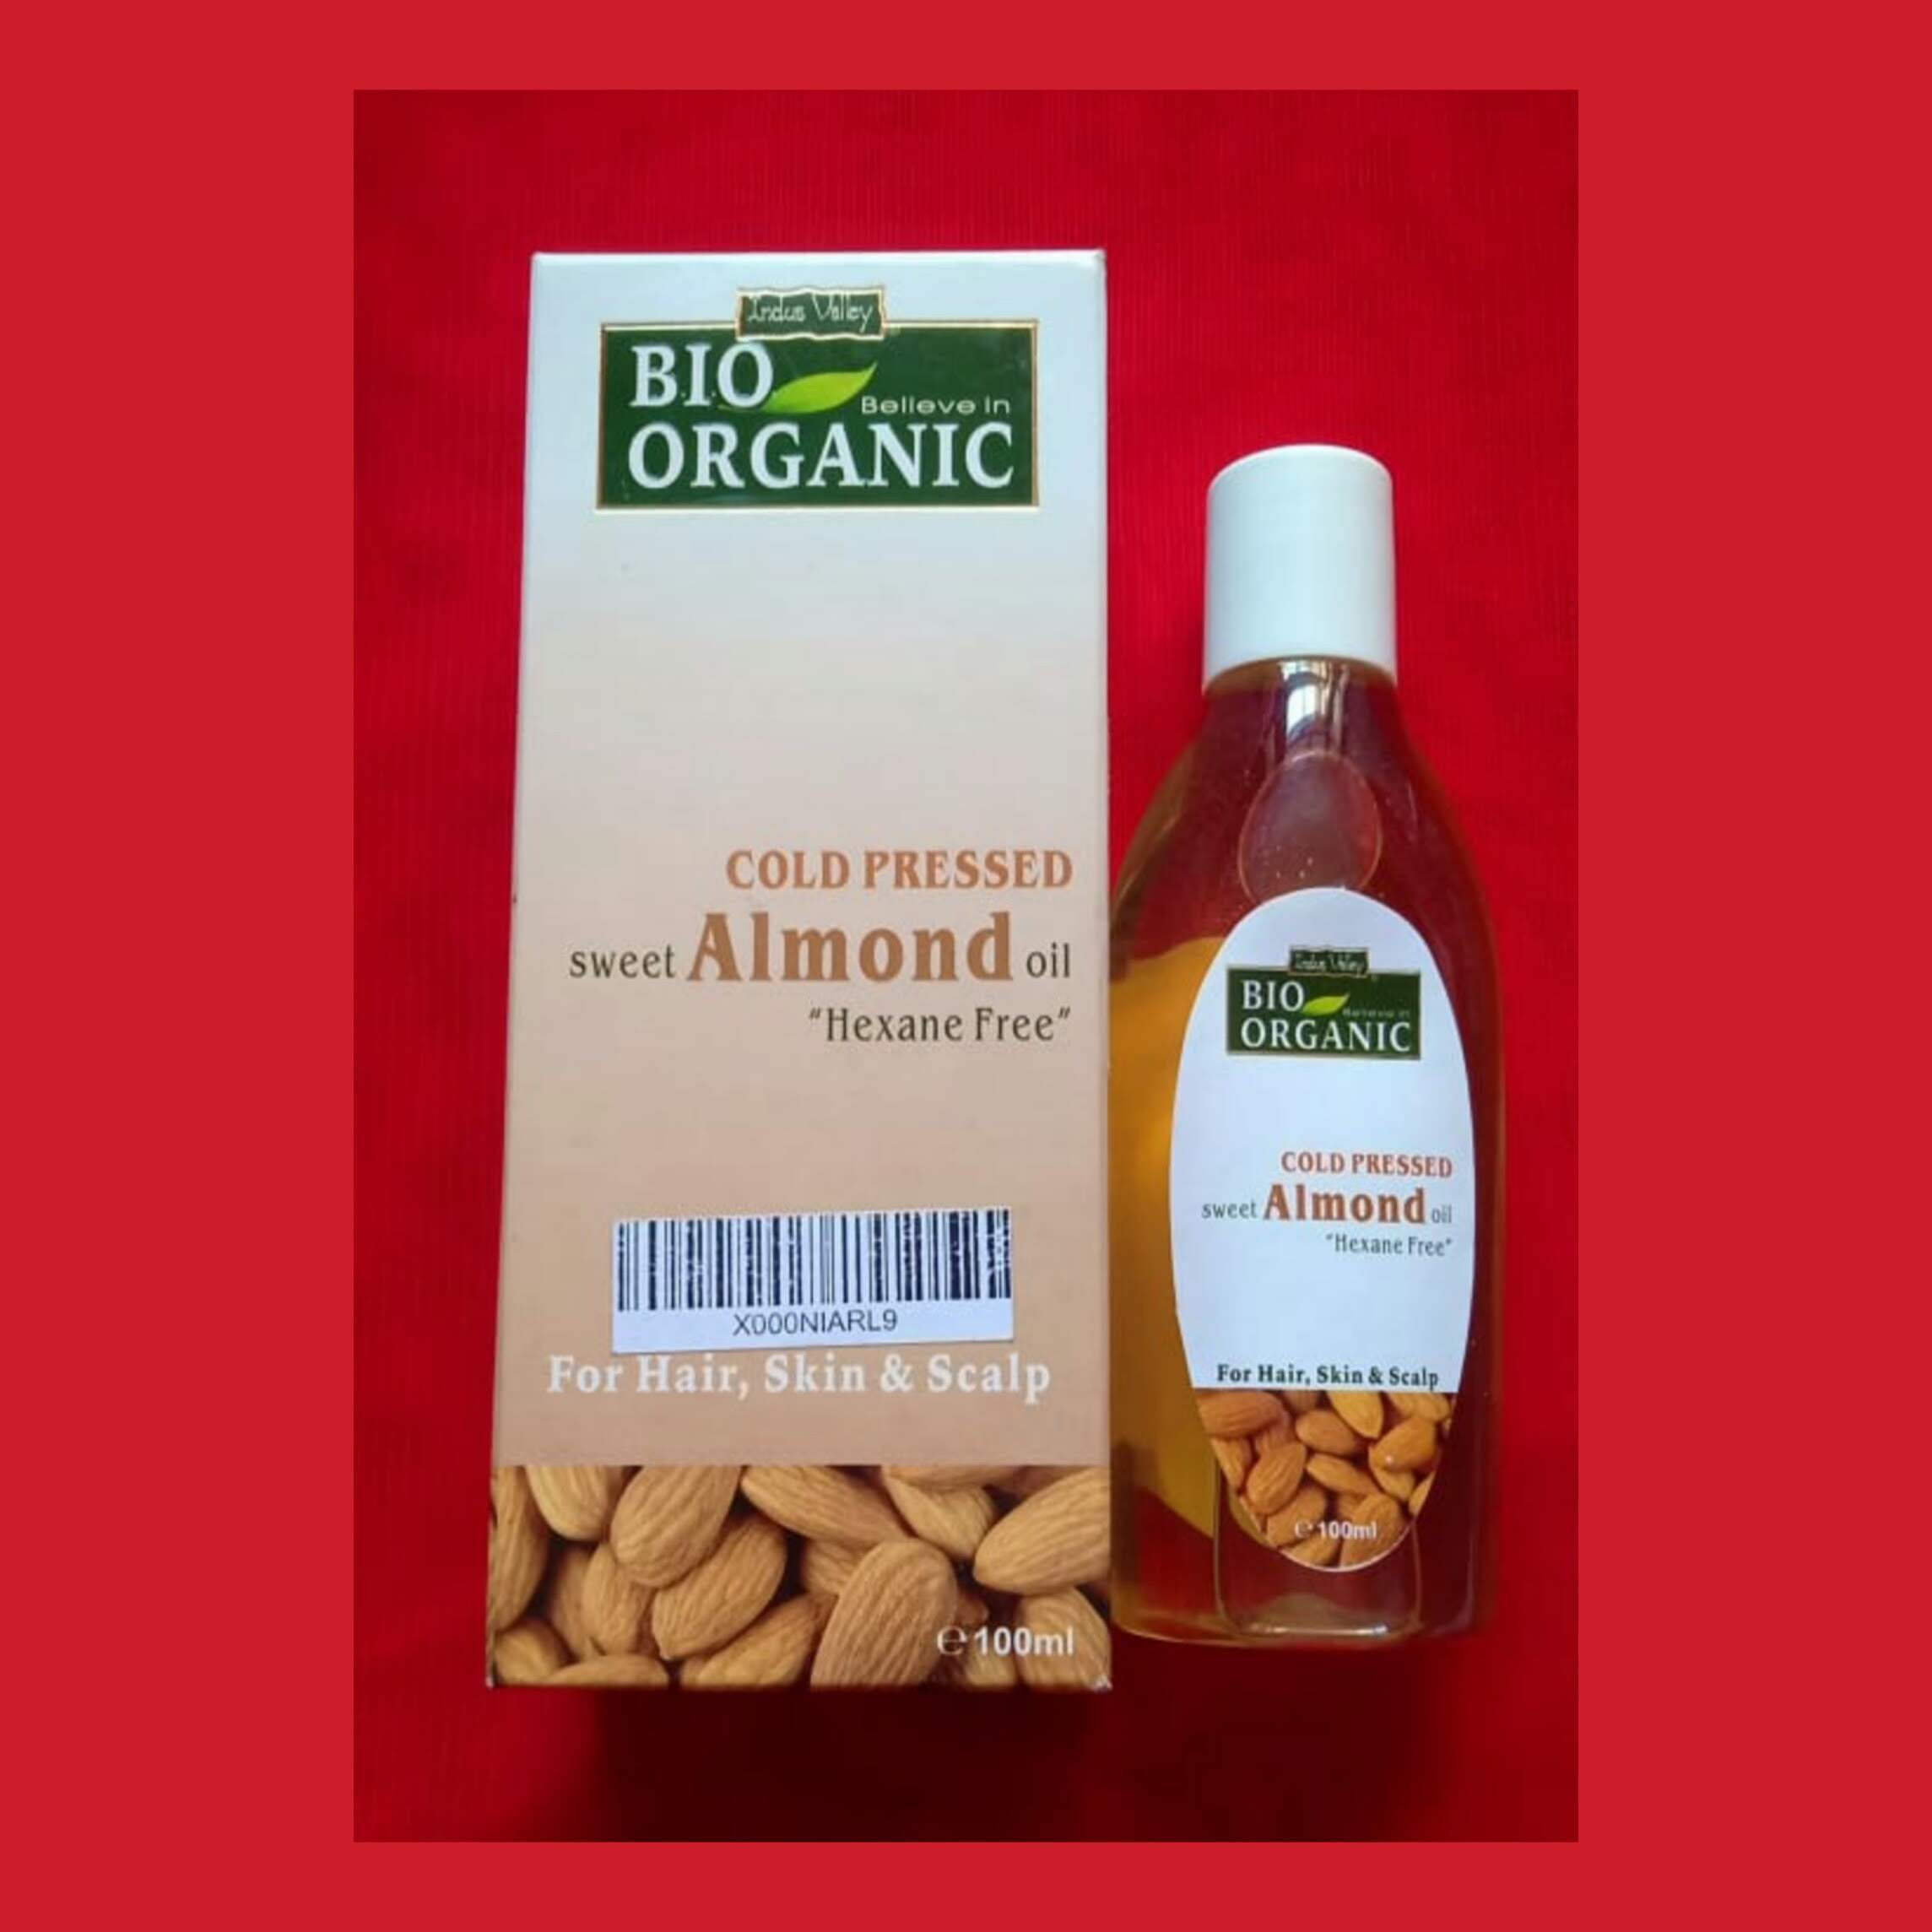 Indus Valley Cold Pressed Sweet Almond Oil-Works well for dry skin-By ruchikaudhwani